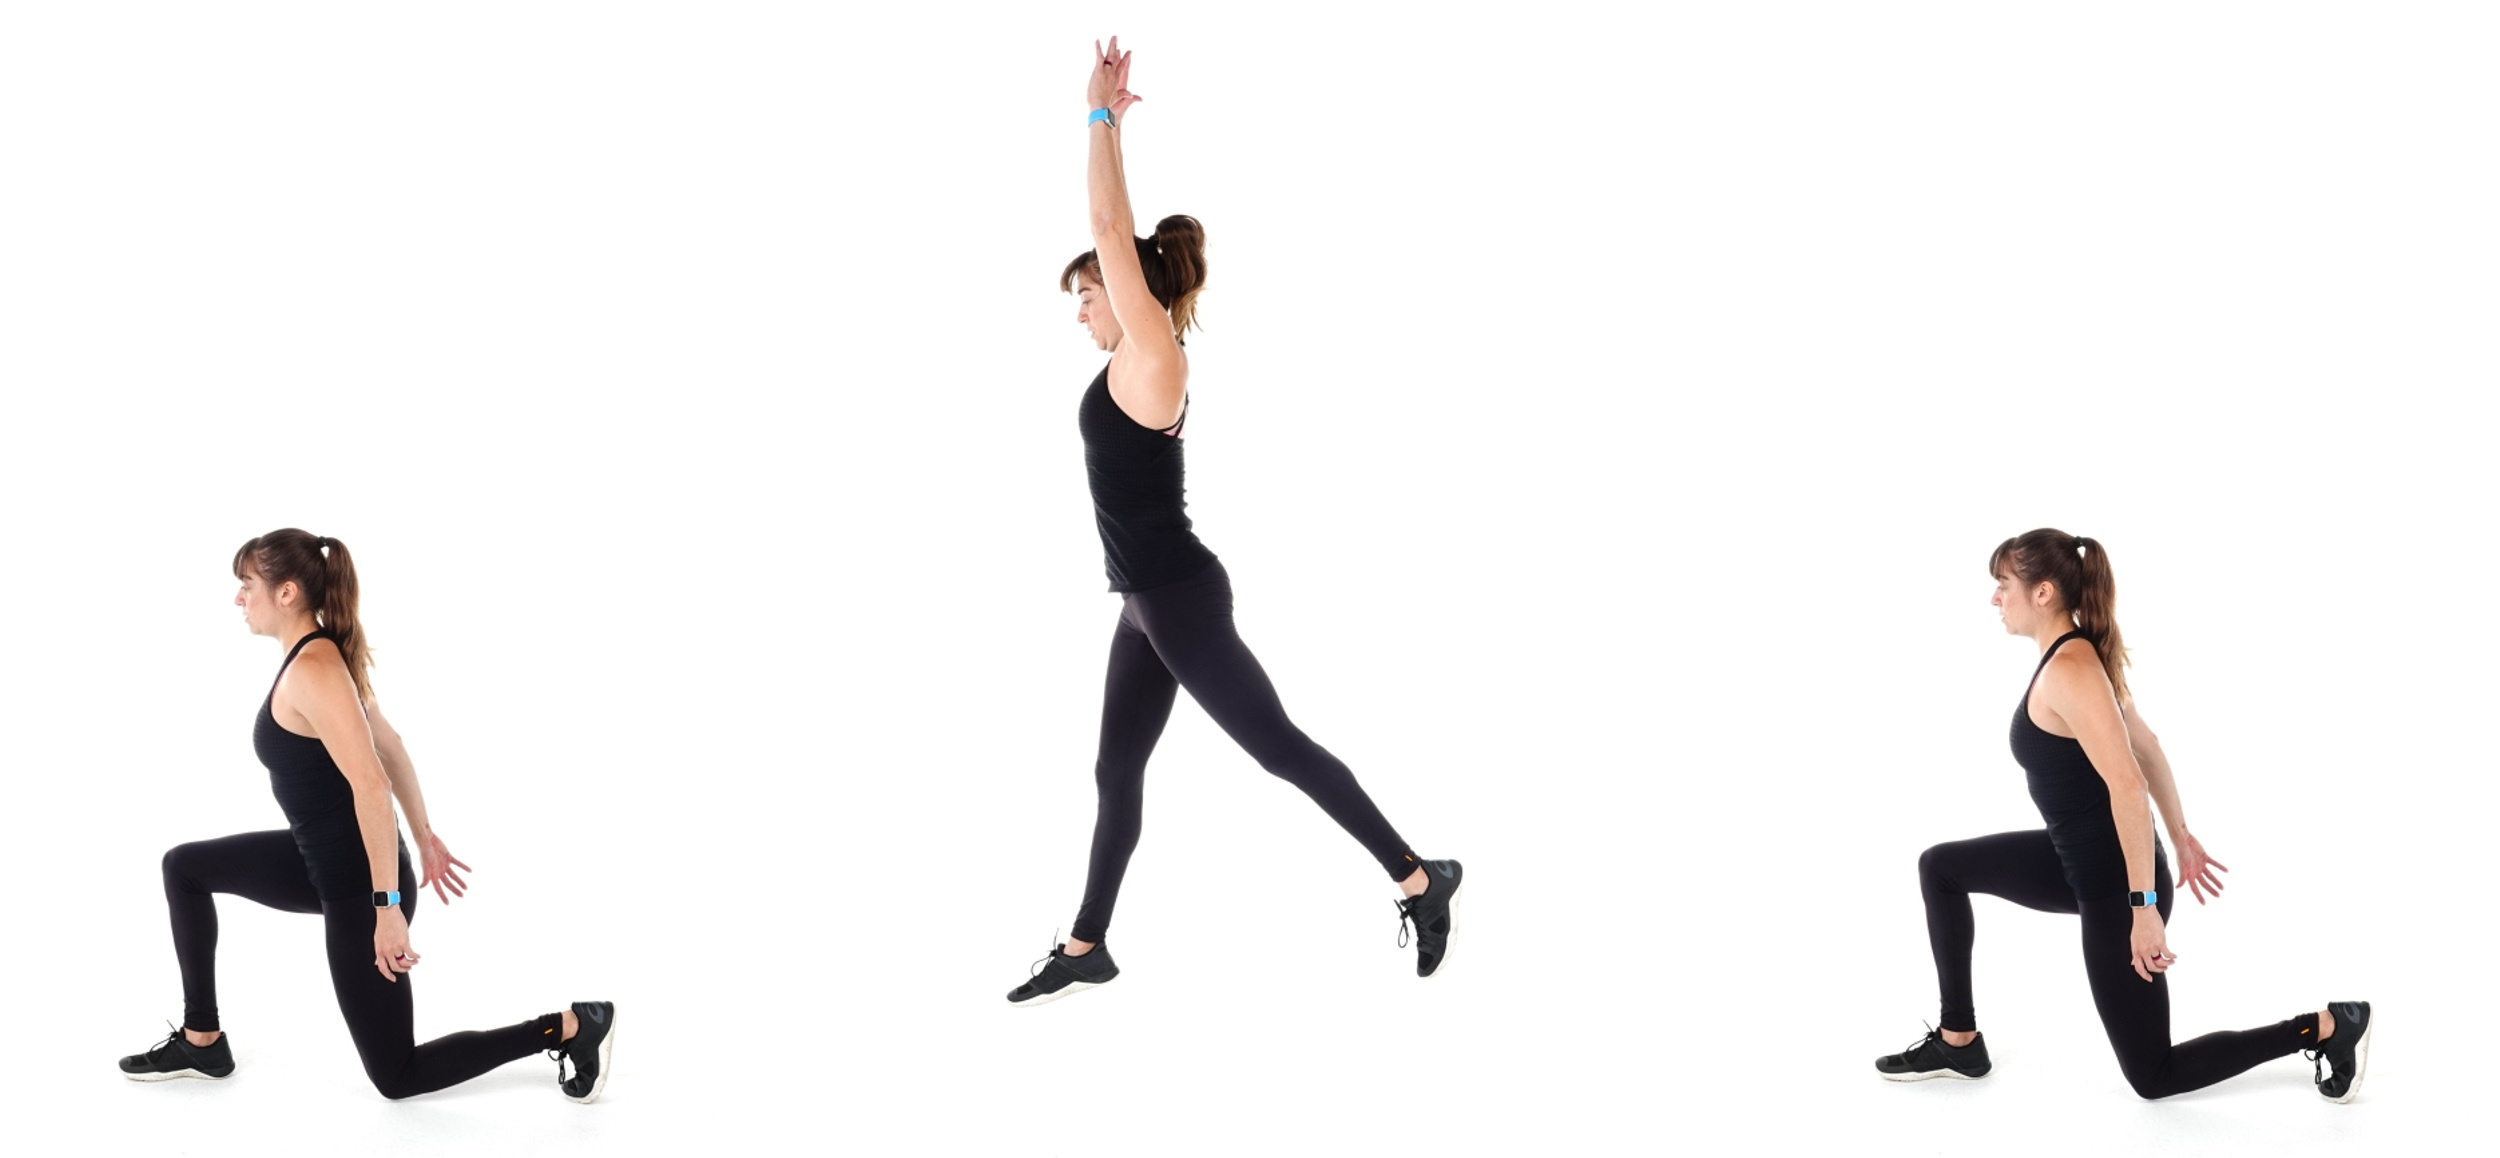 at-home cardio exercise